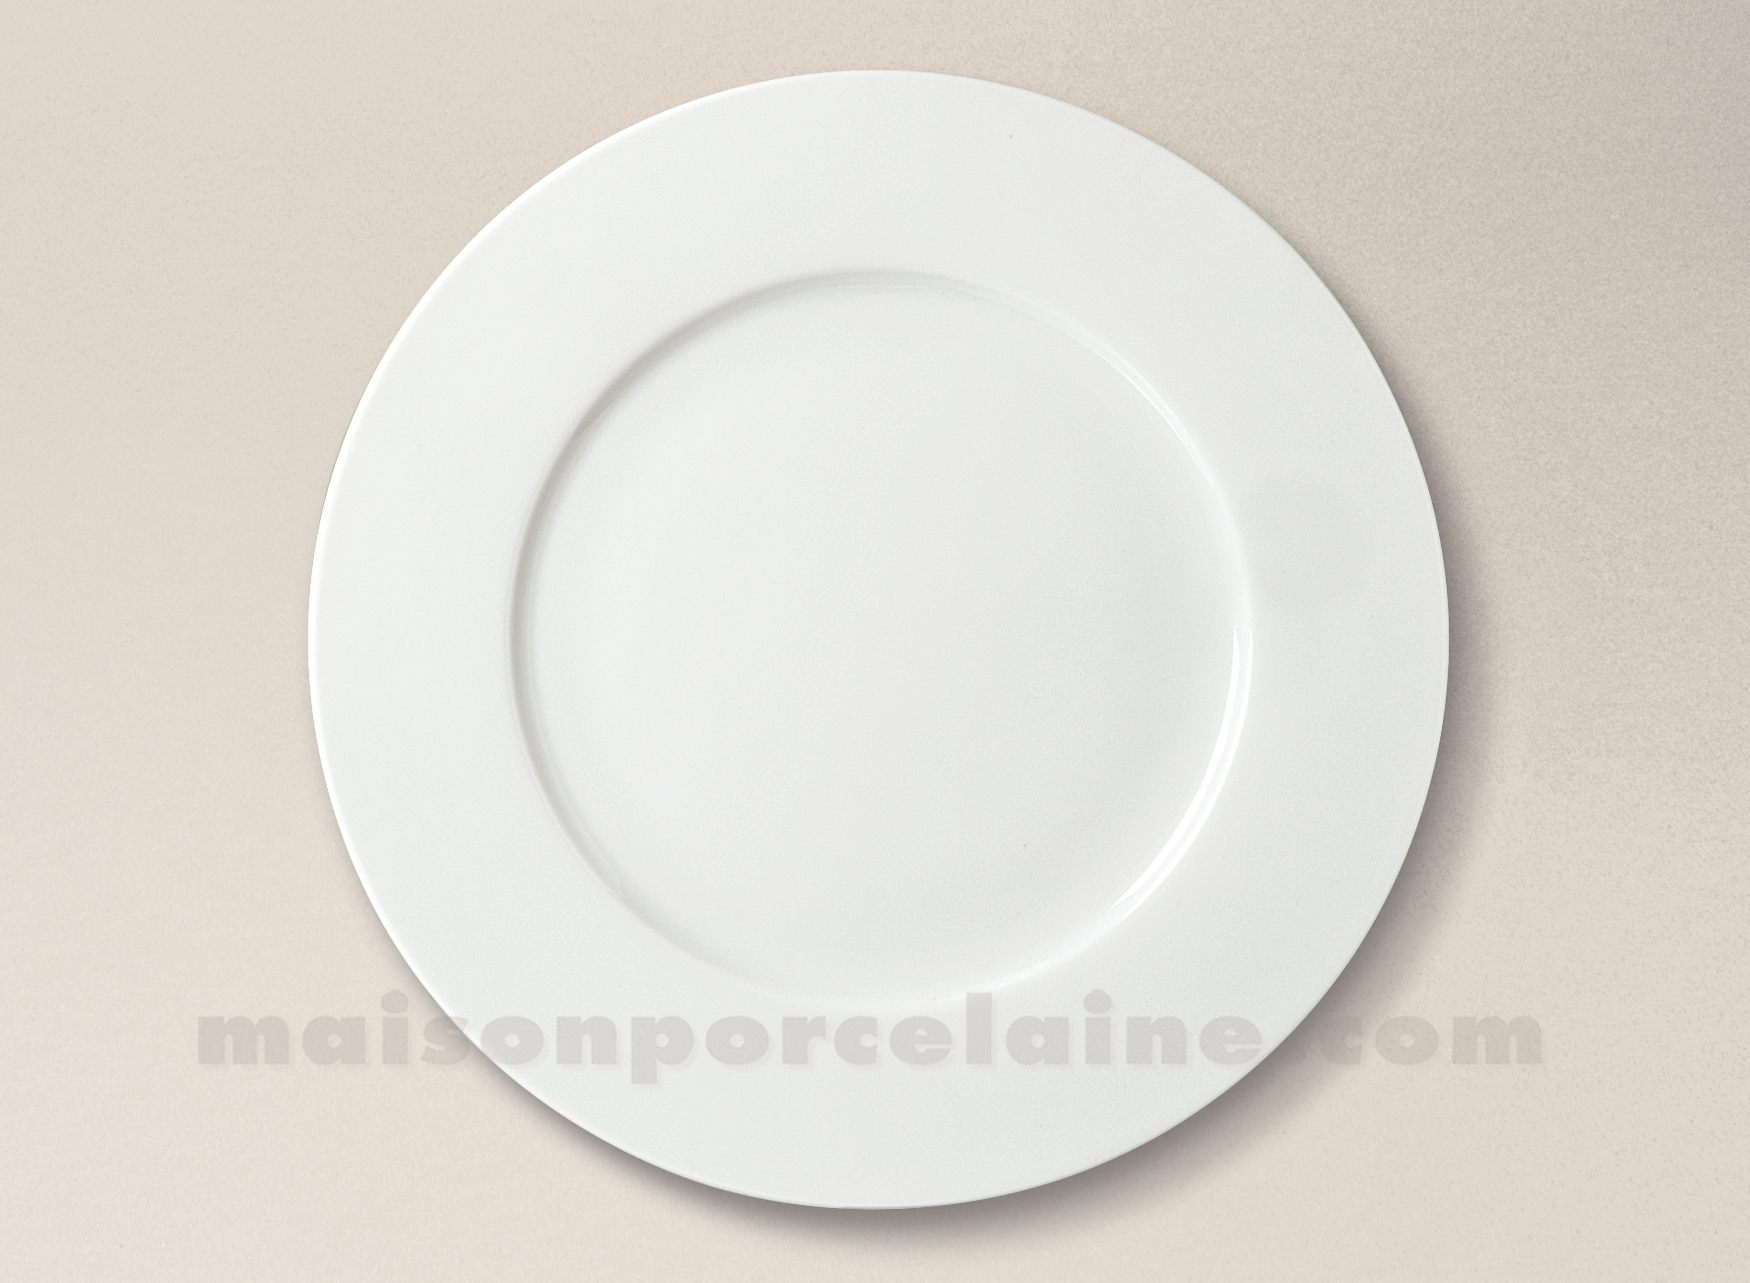 assiette plate porcelaine blanche sologne d27 maison de la porcelaine. Black Bedroom Furniture Sets. Home Design Ideas